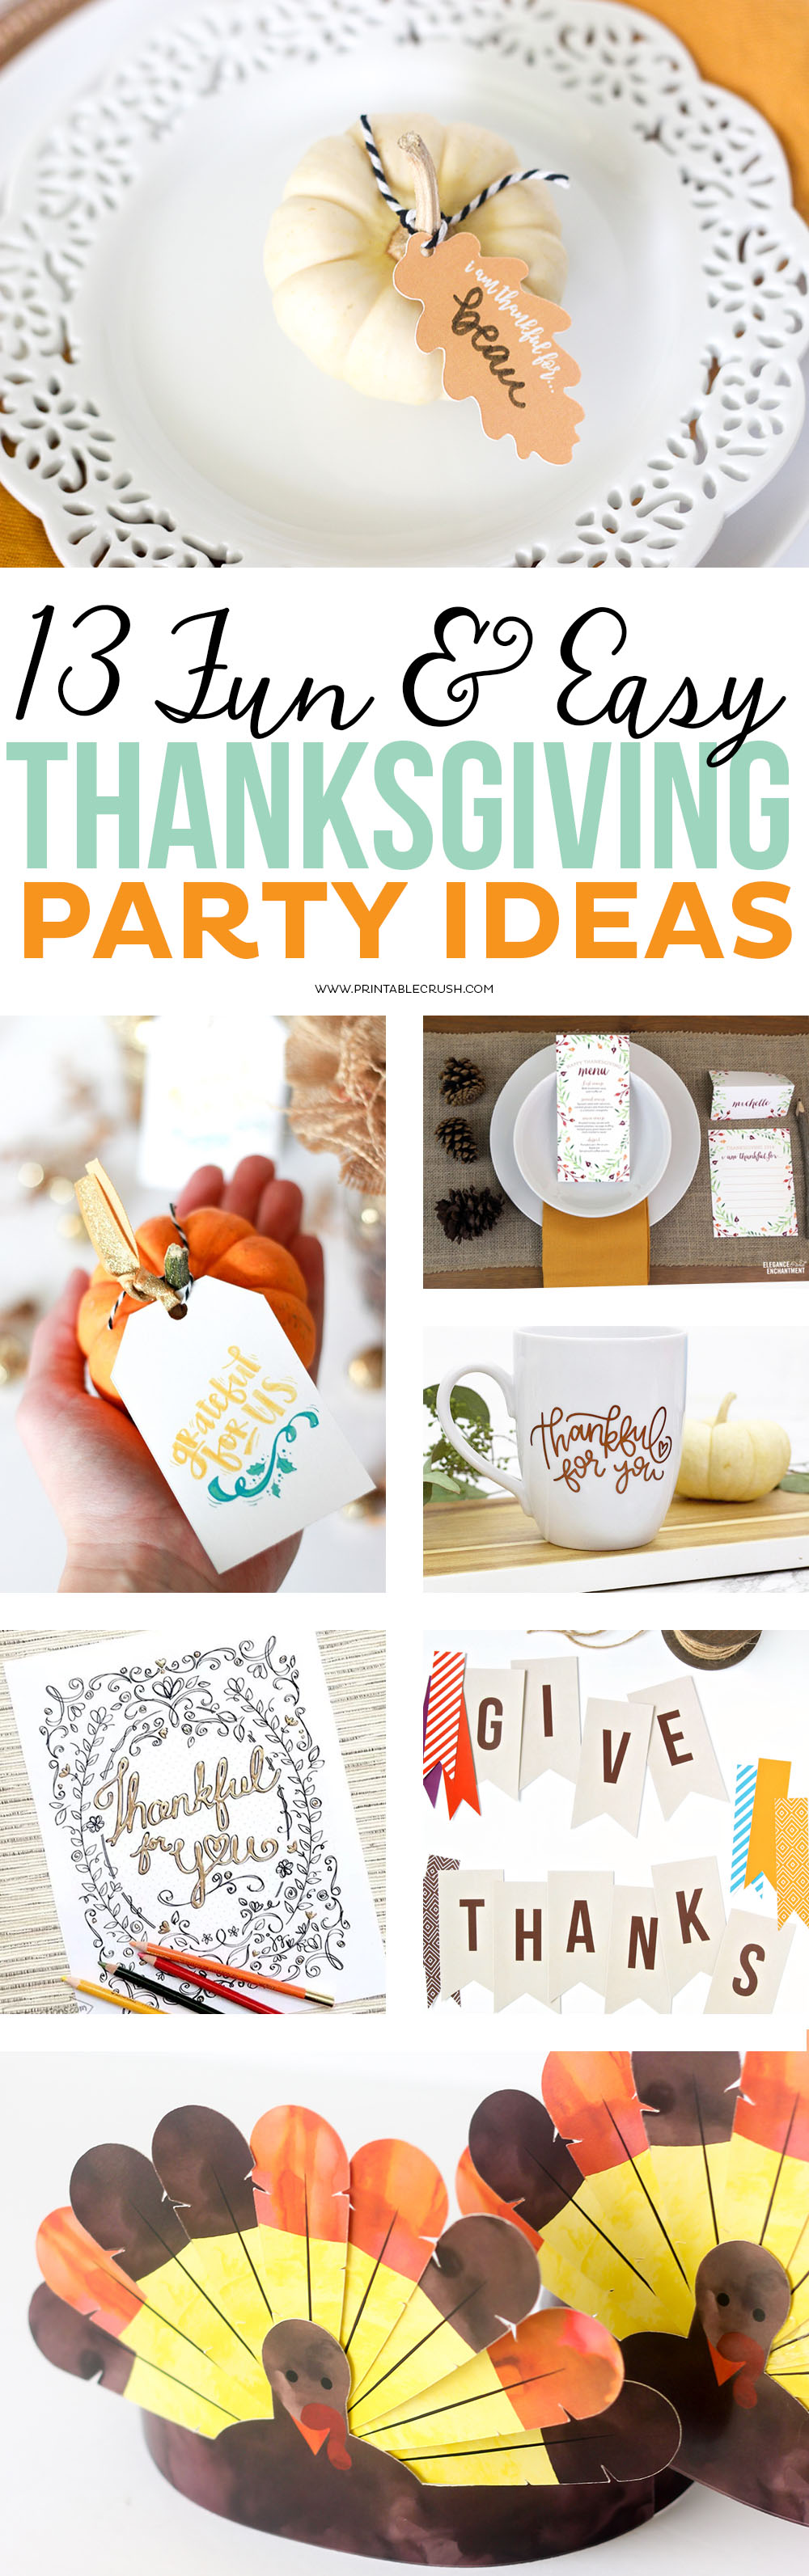 13 Fun and Easy Thanksgiving Party Ideas - Printable Crush